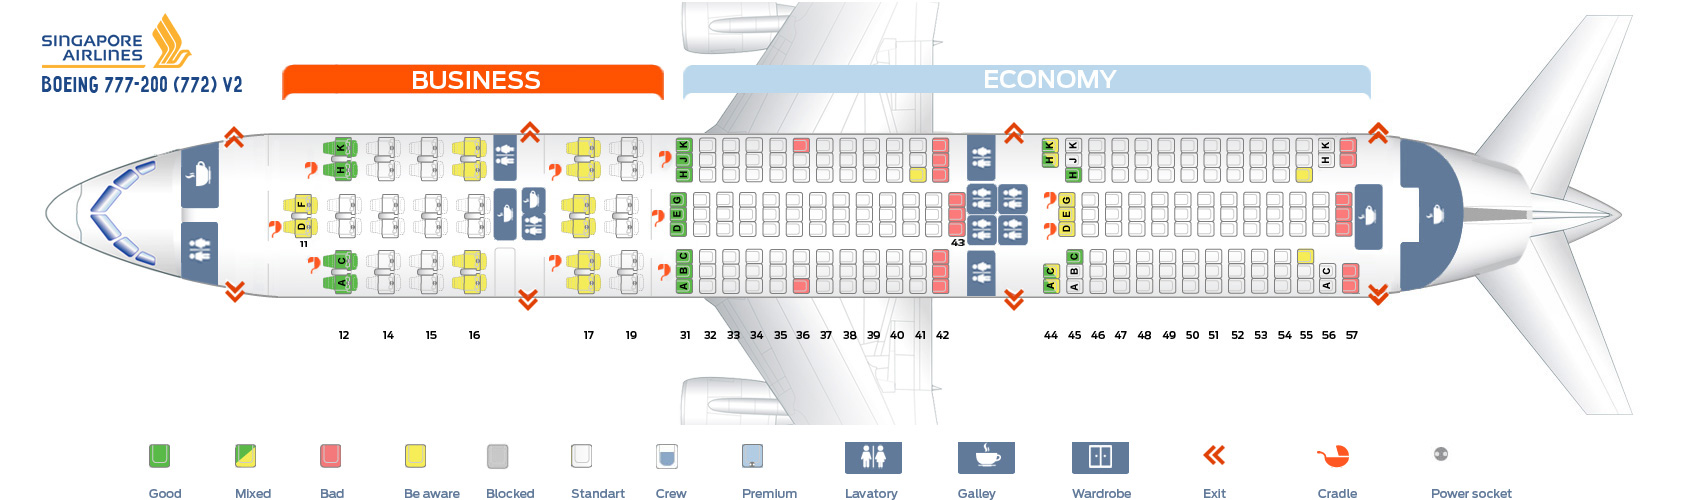 Seat Map Boeing 777-200 V2 Singapore Airlines